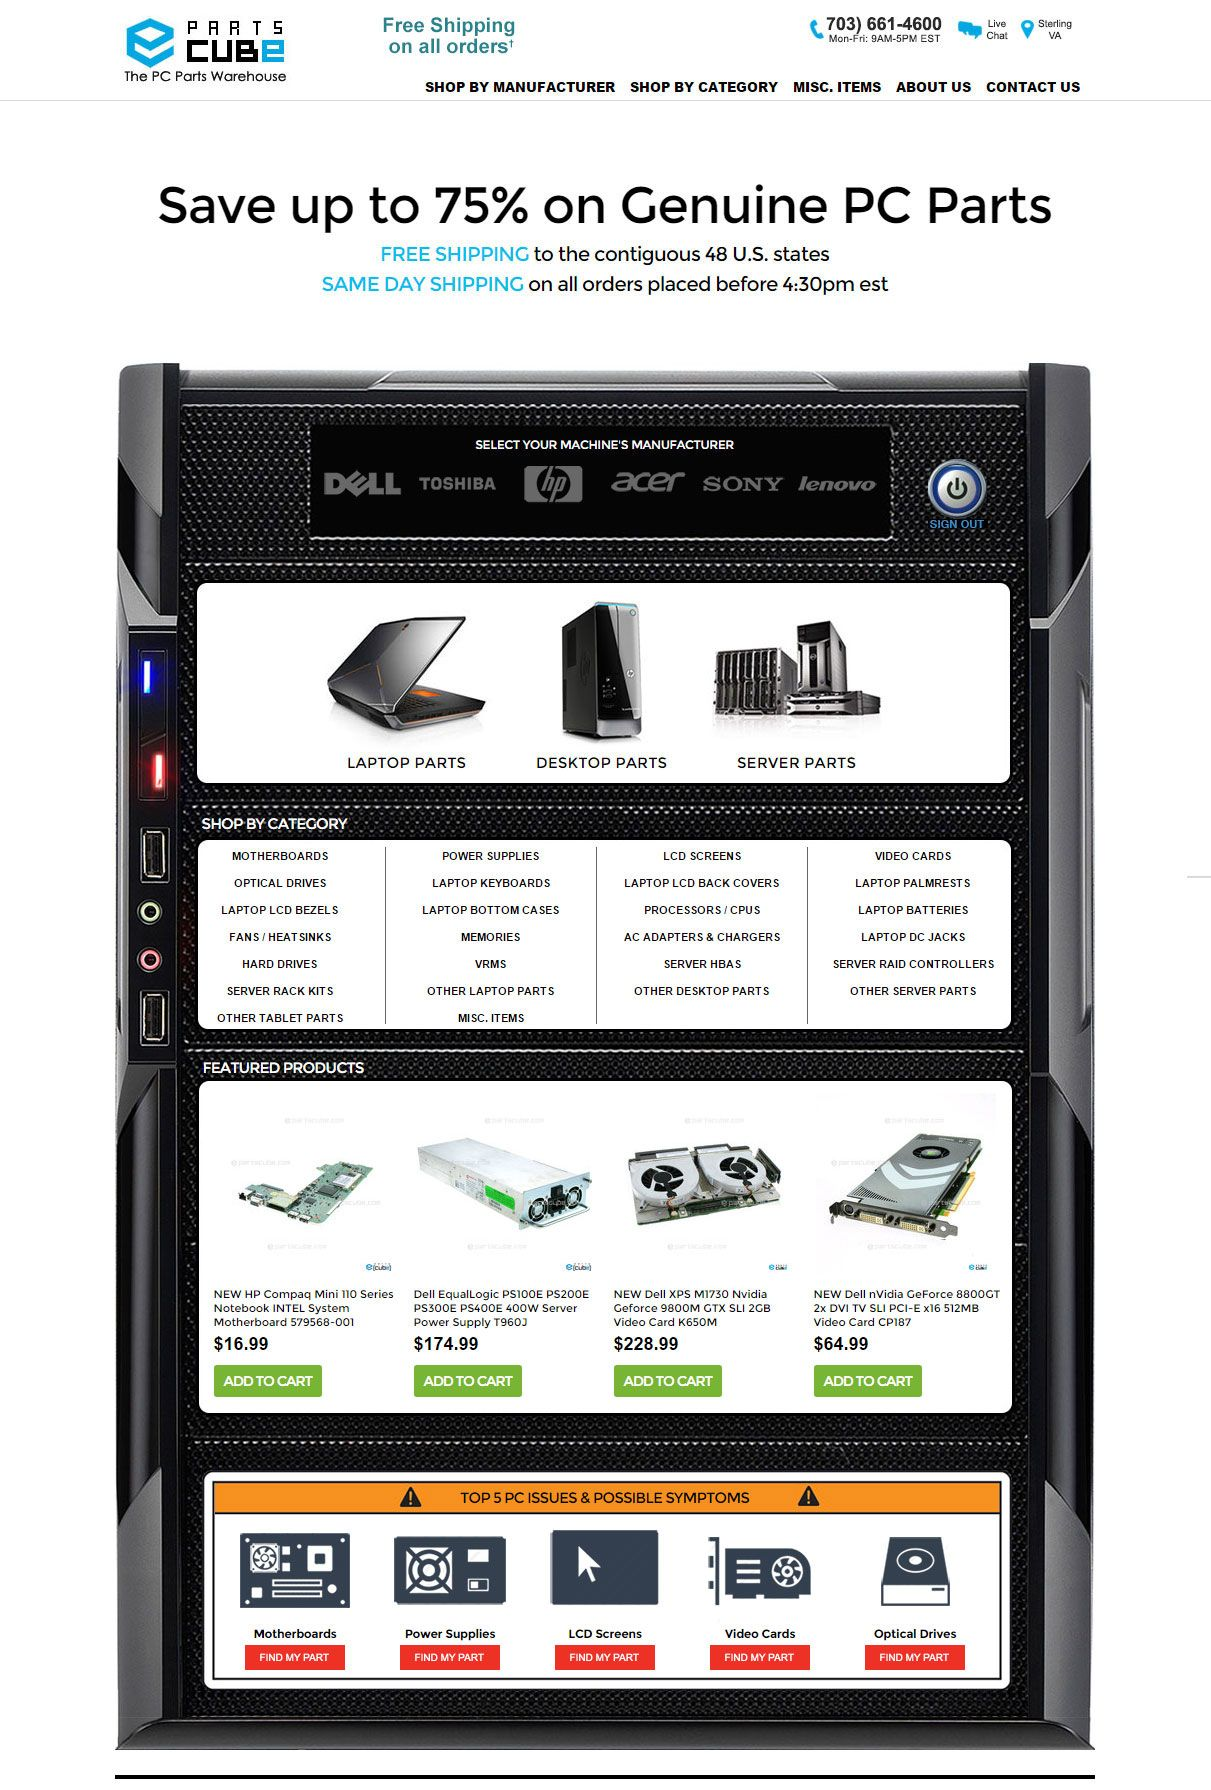 Partscube Is A Wholesaler And E Retailer Of Computer